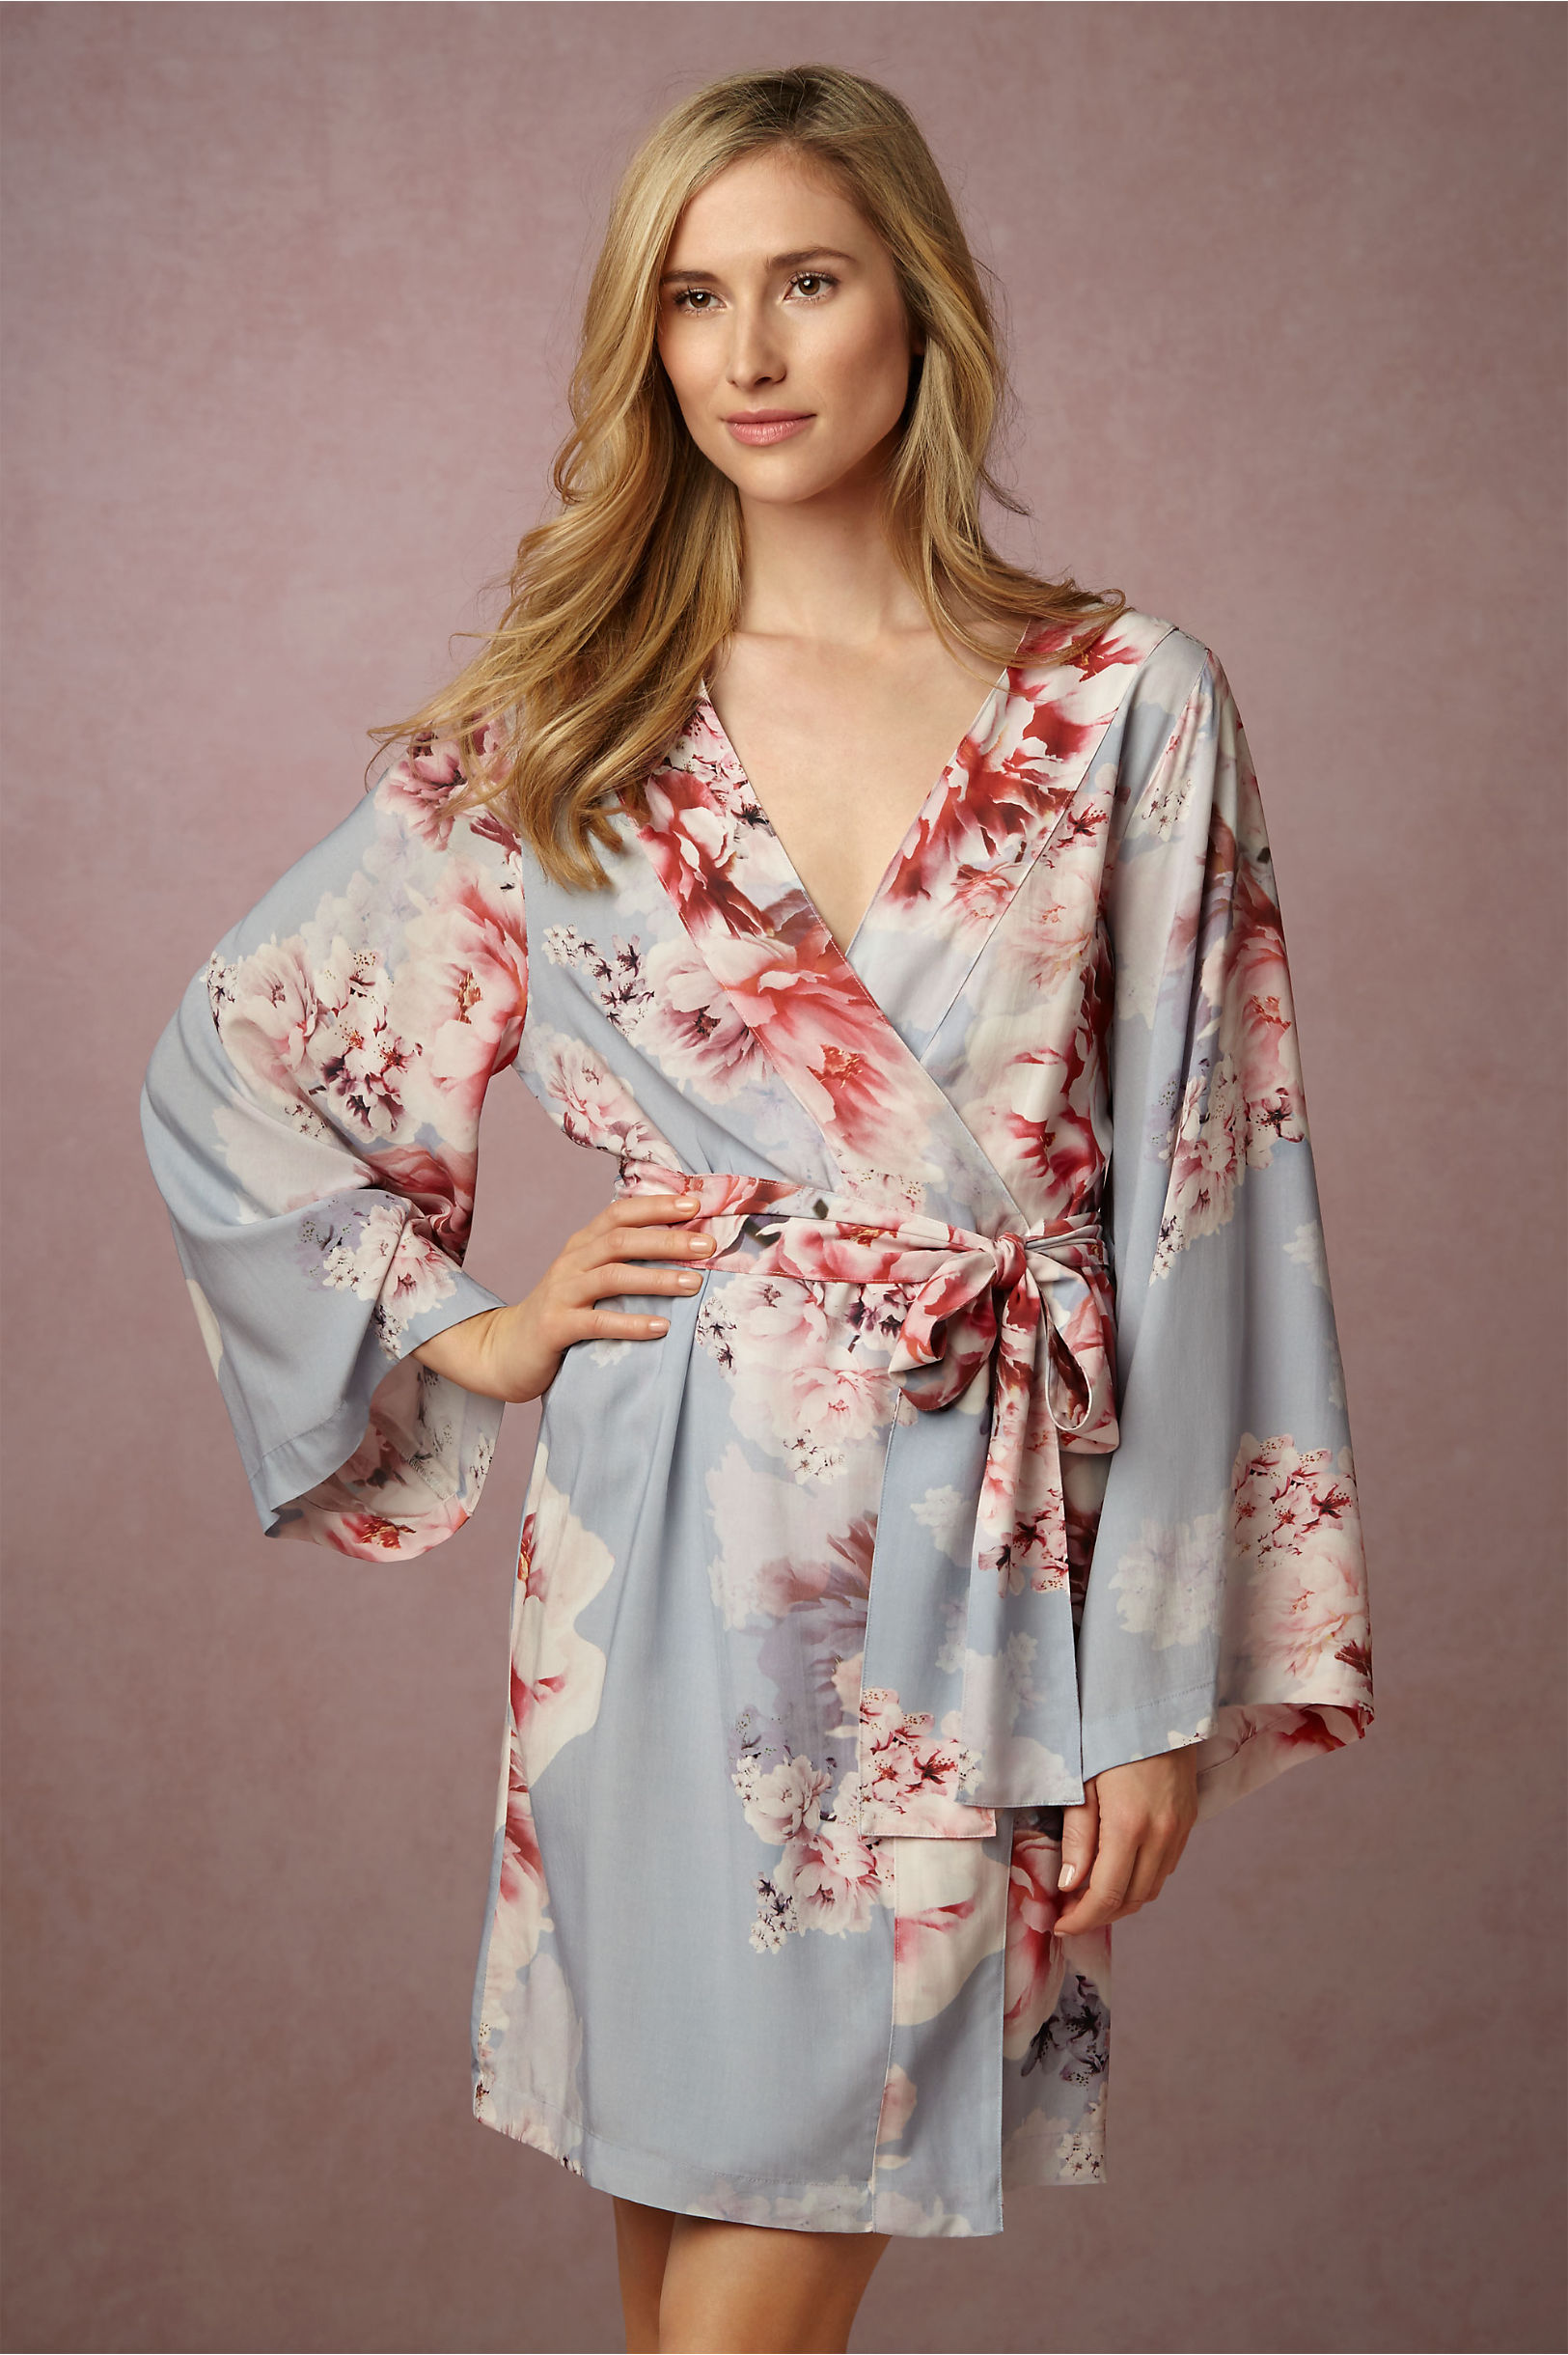 bbcd58a6d05 Lingerie   Sleepwear Archives - It Started With Yes!